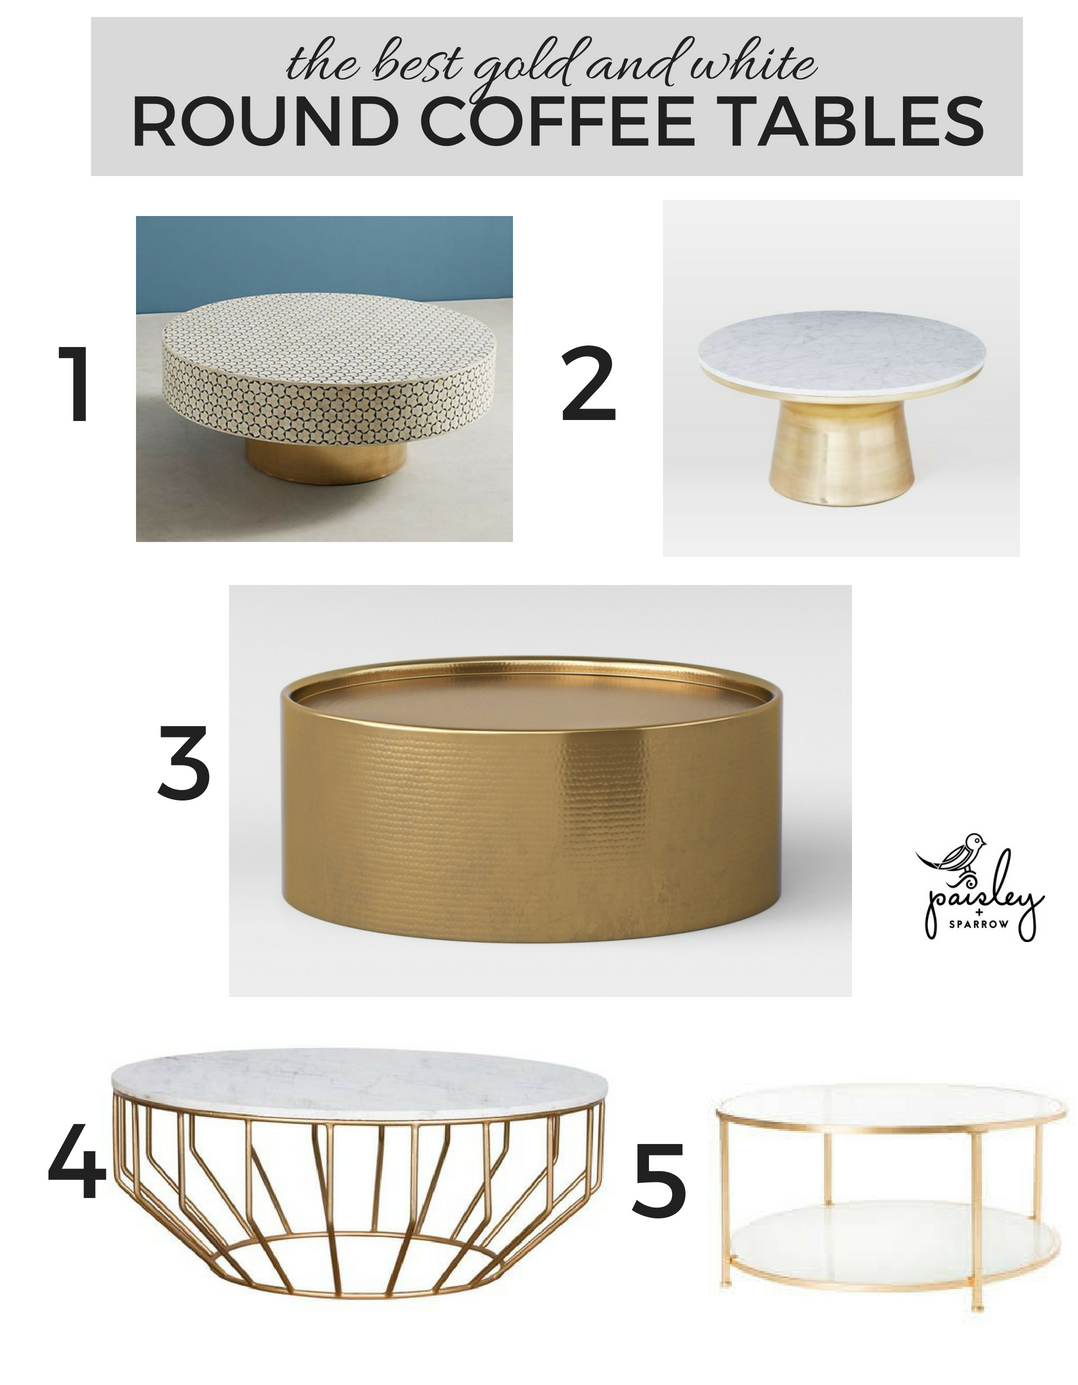 the best round coffee table optoins